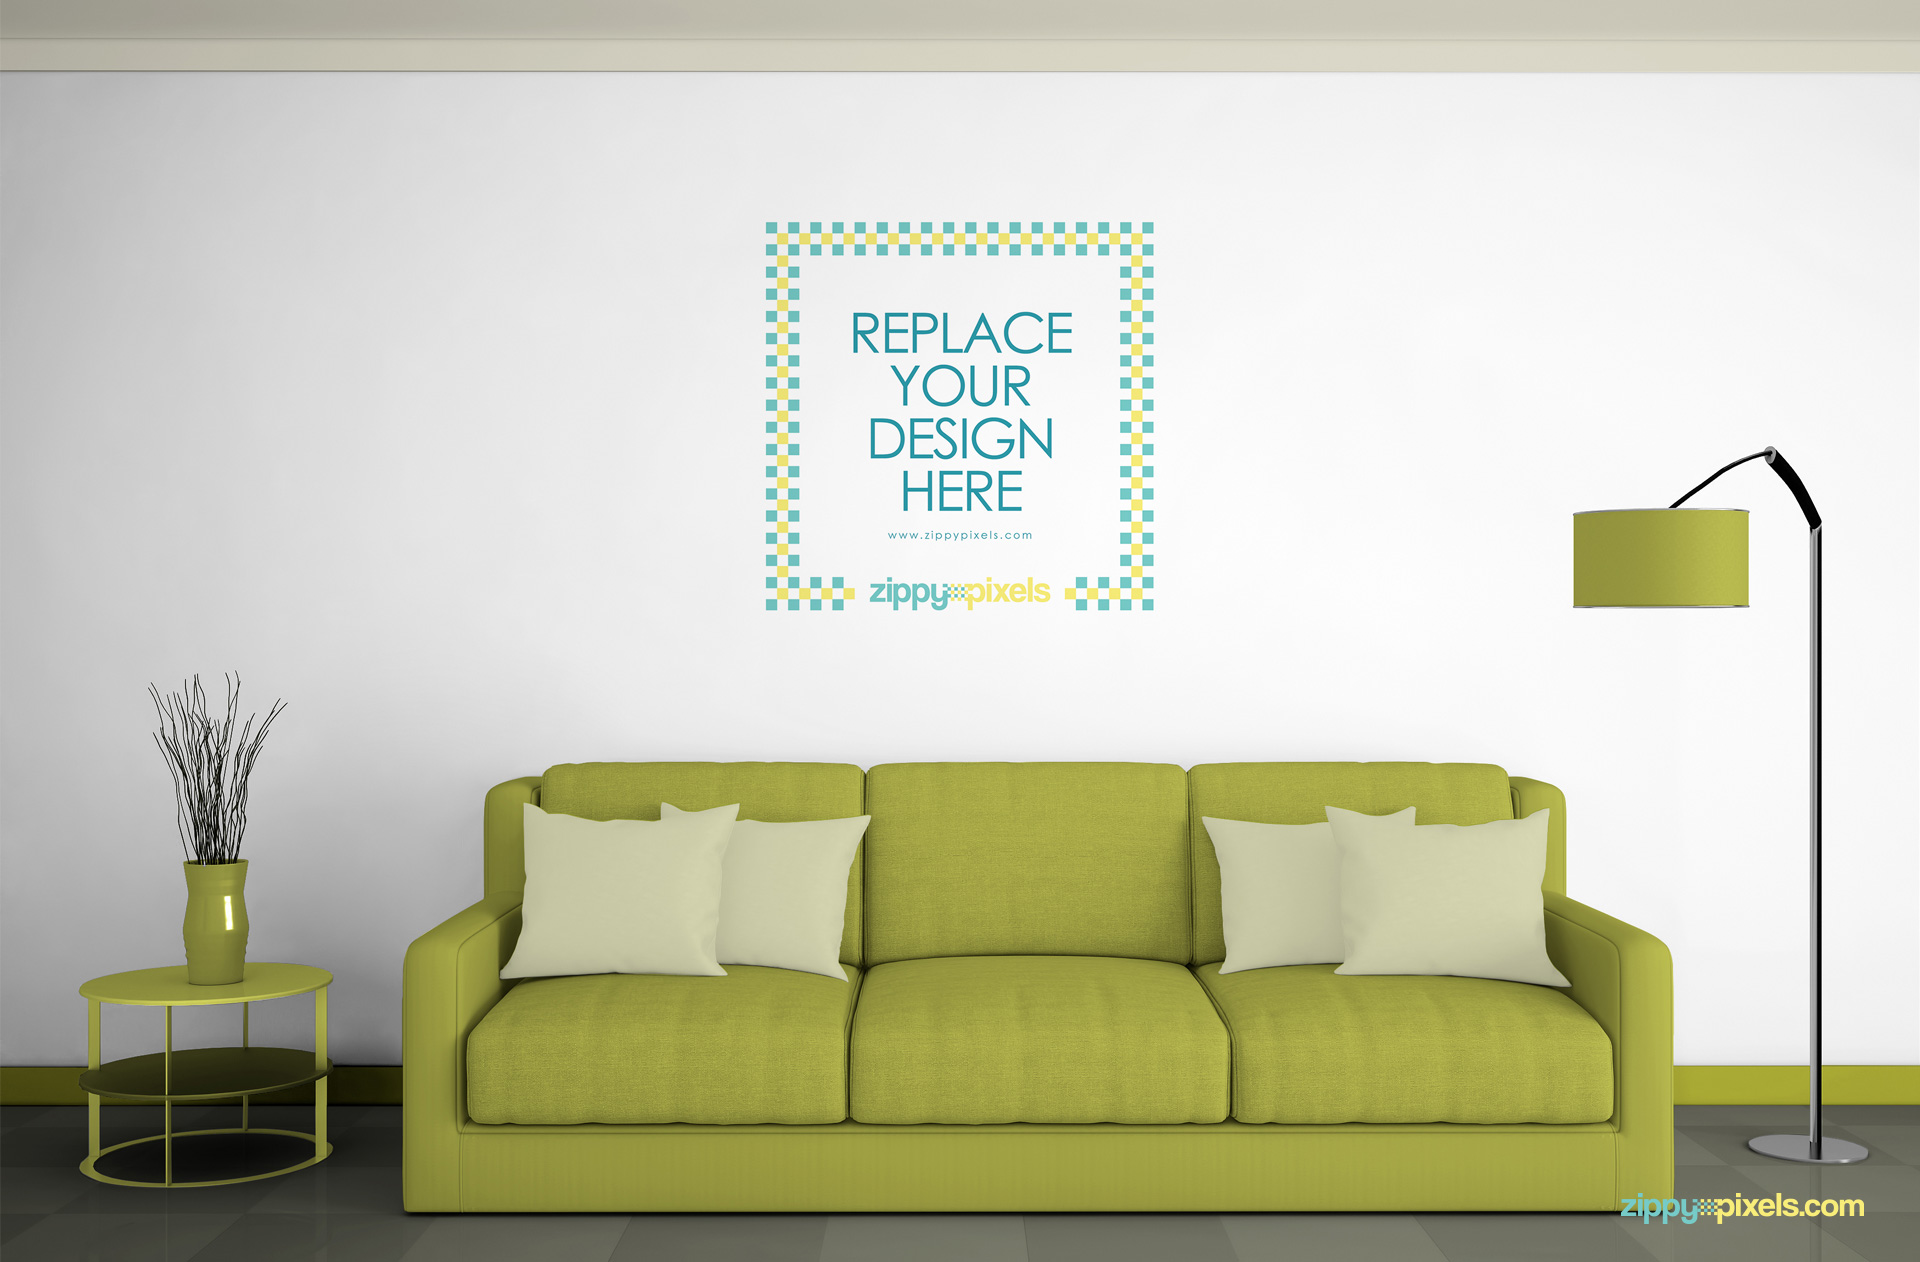 Free wall mockup psd zippypixels for Free interior design ideas for living rooms